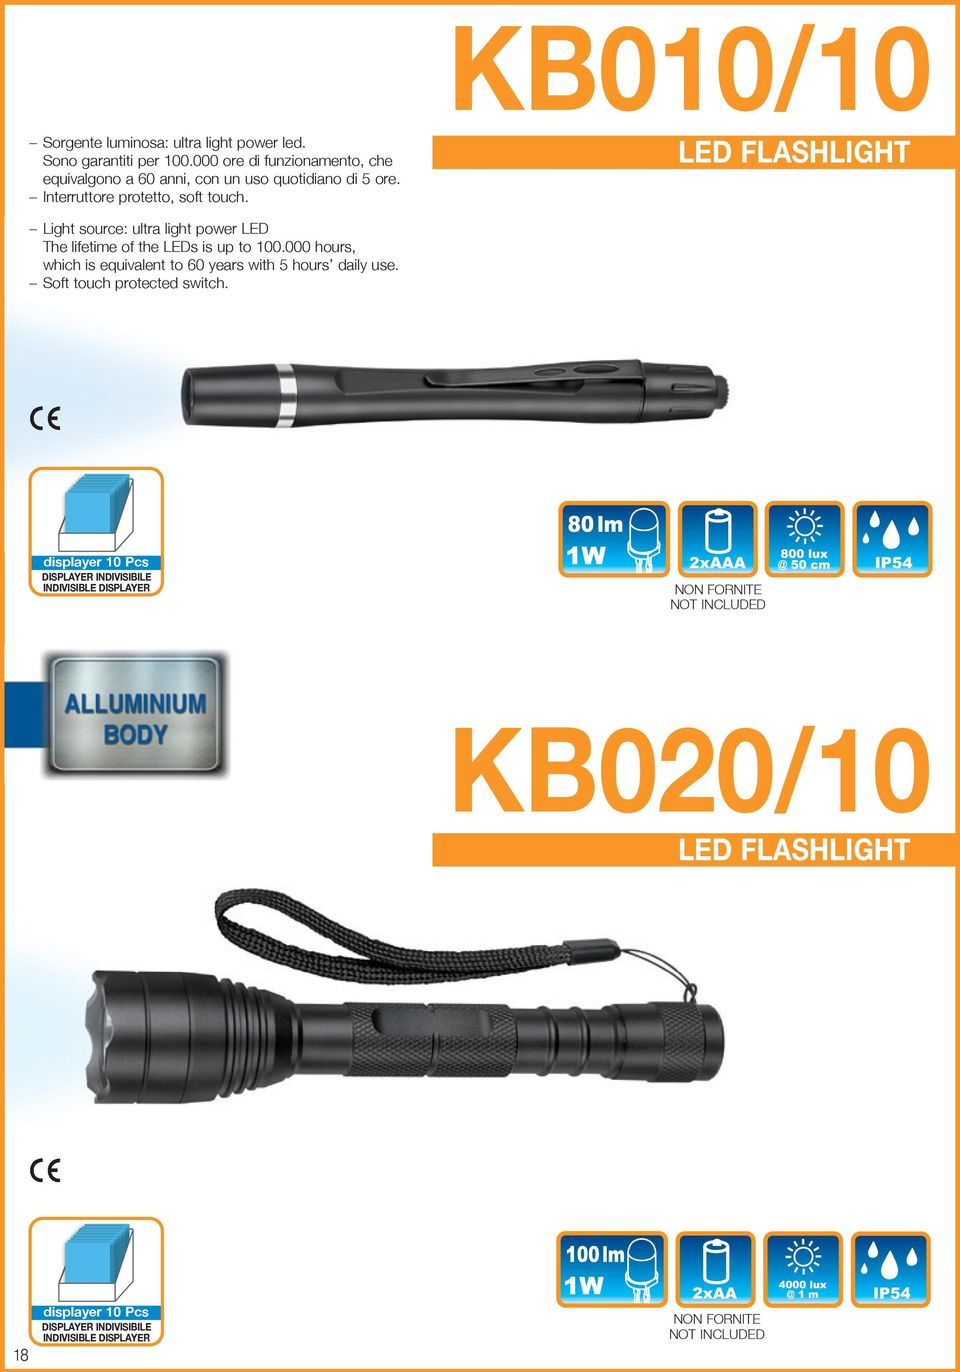 LED FLASHLIGHT Light source: ultra light power LED The lifetime of the LEDs is up to 100.